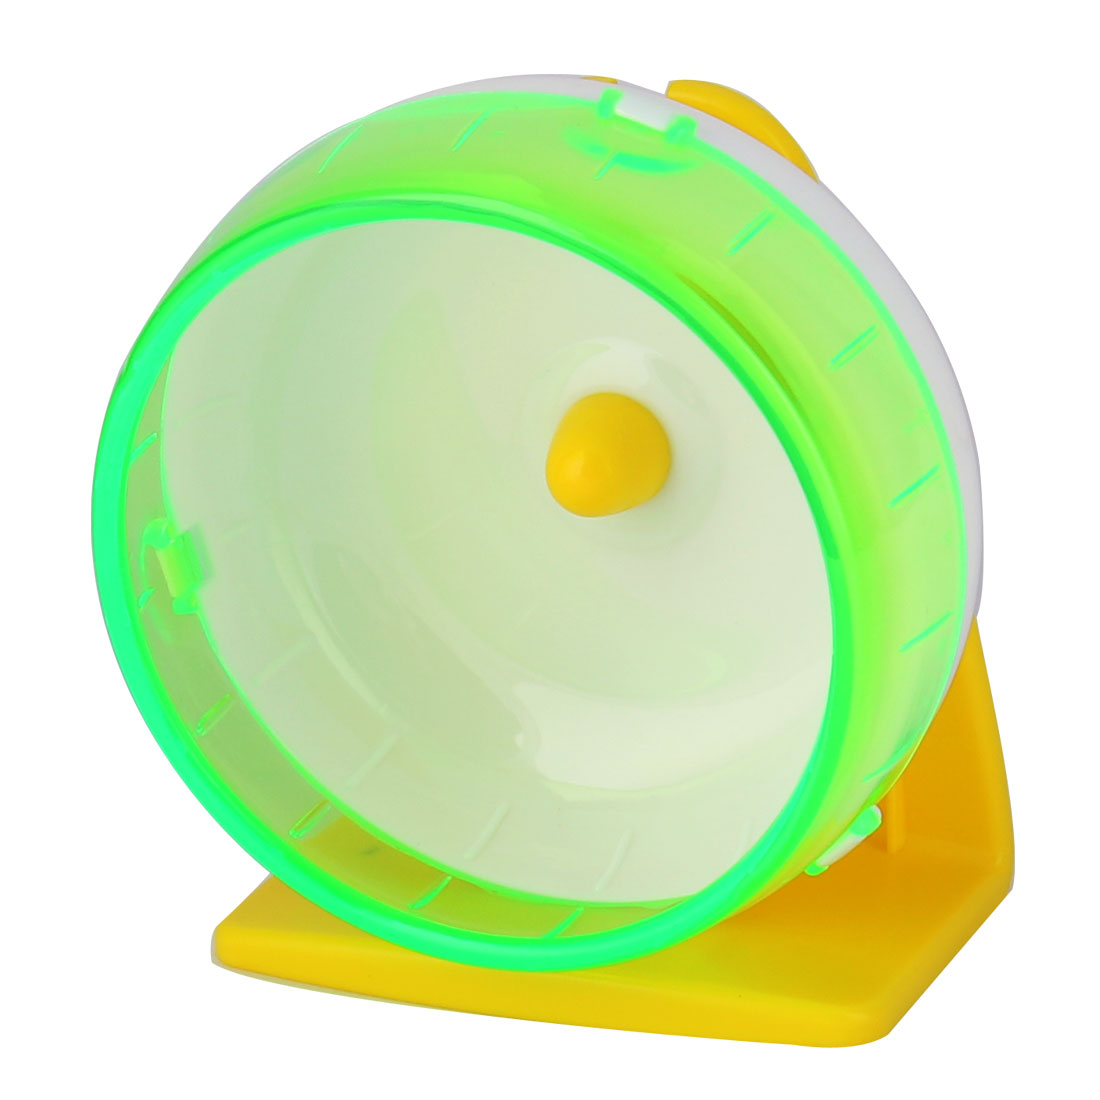 Unique Bargains Pet Hamster Gerbil Plastic Play Stand Wheel Toy Holder Light Green w Suction Cup